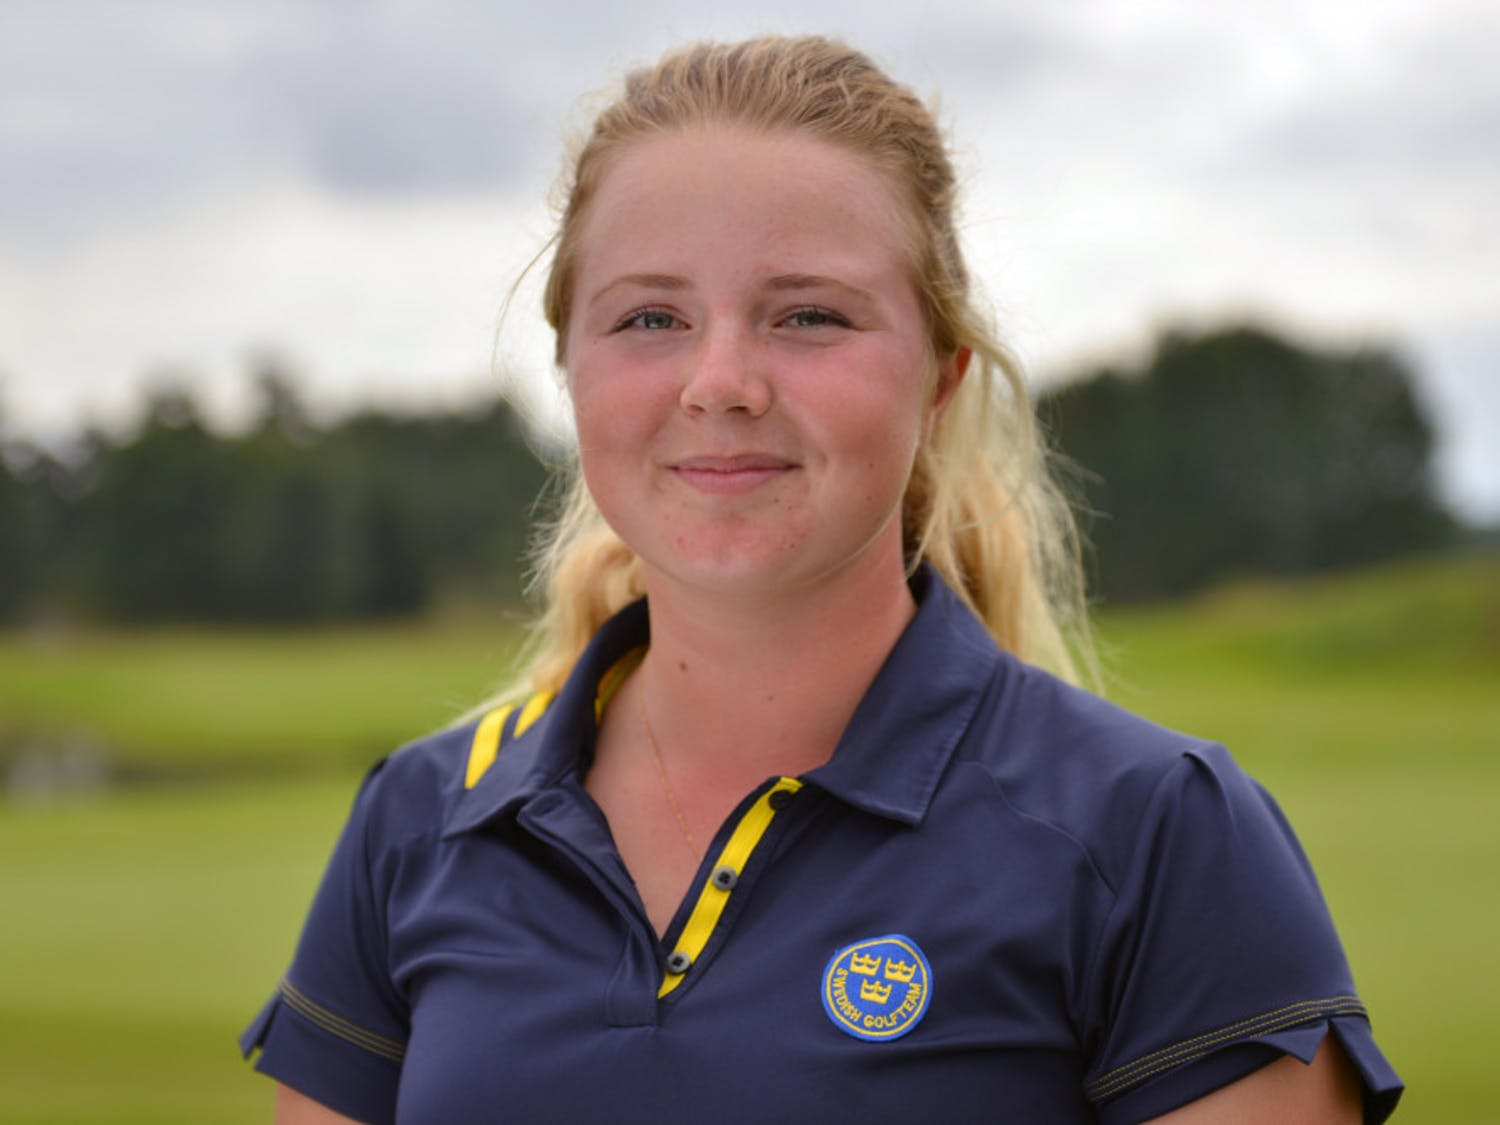 Elin Esborn finished in fifth place in the Ocean Course Invitational after shooting 2 under par in the tournament.